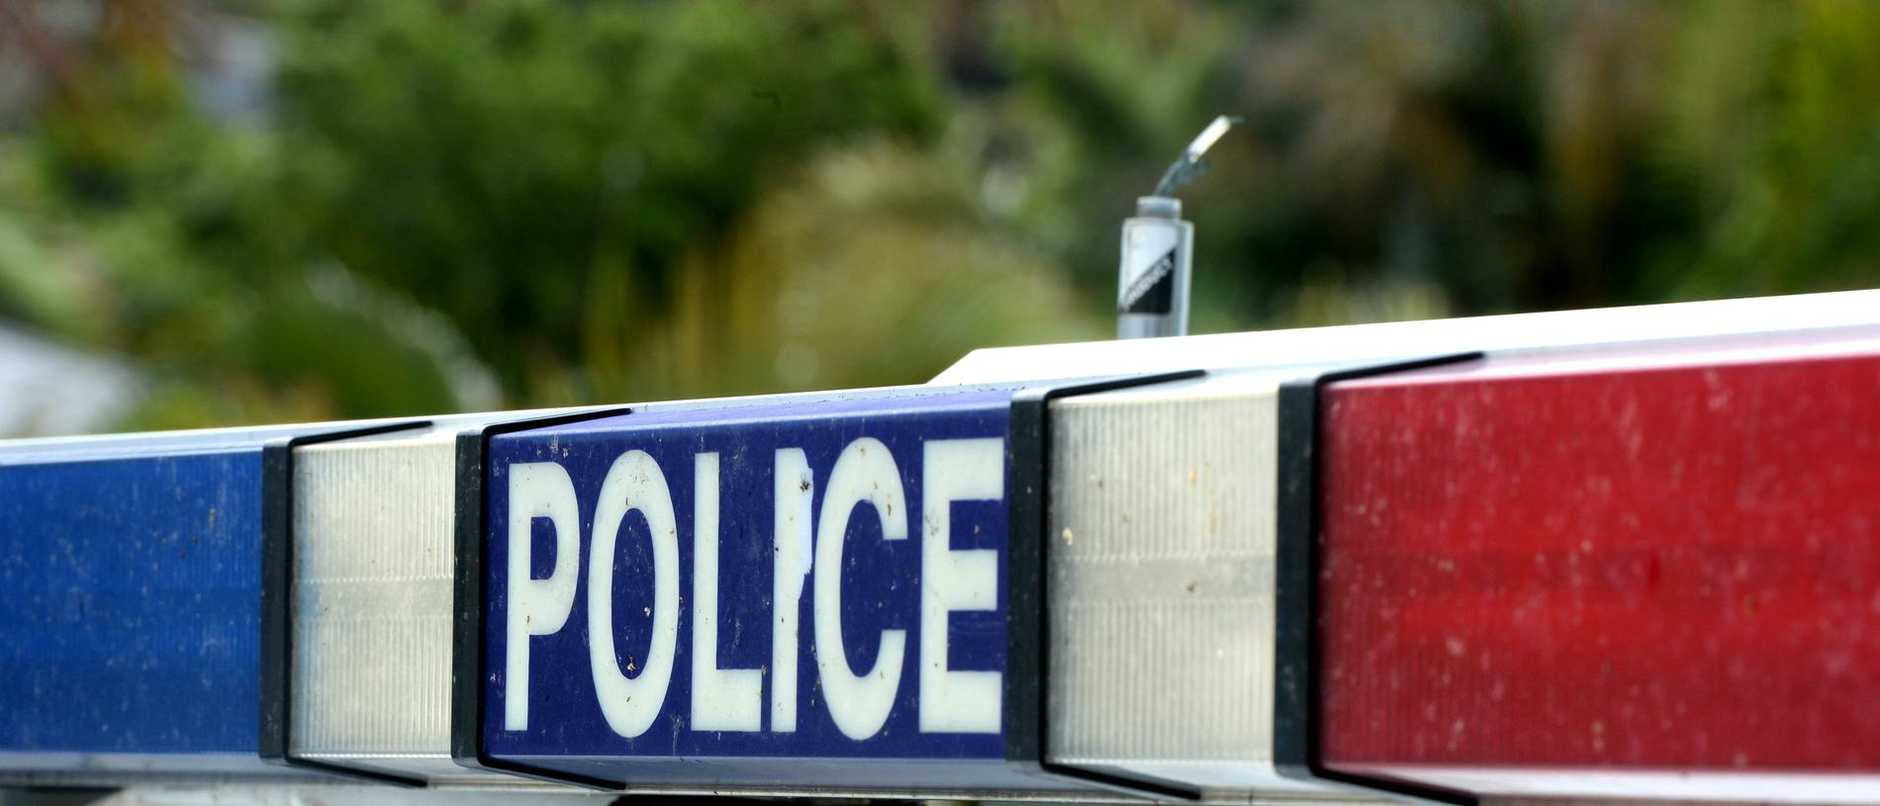 A MAN has been charged after investigations into the robbery of a nursery in Toowoomba on Wednesday afternoon.